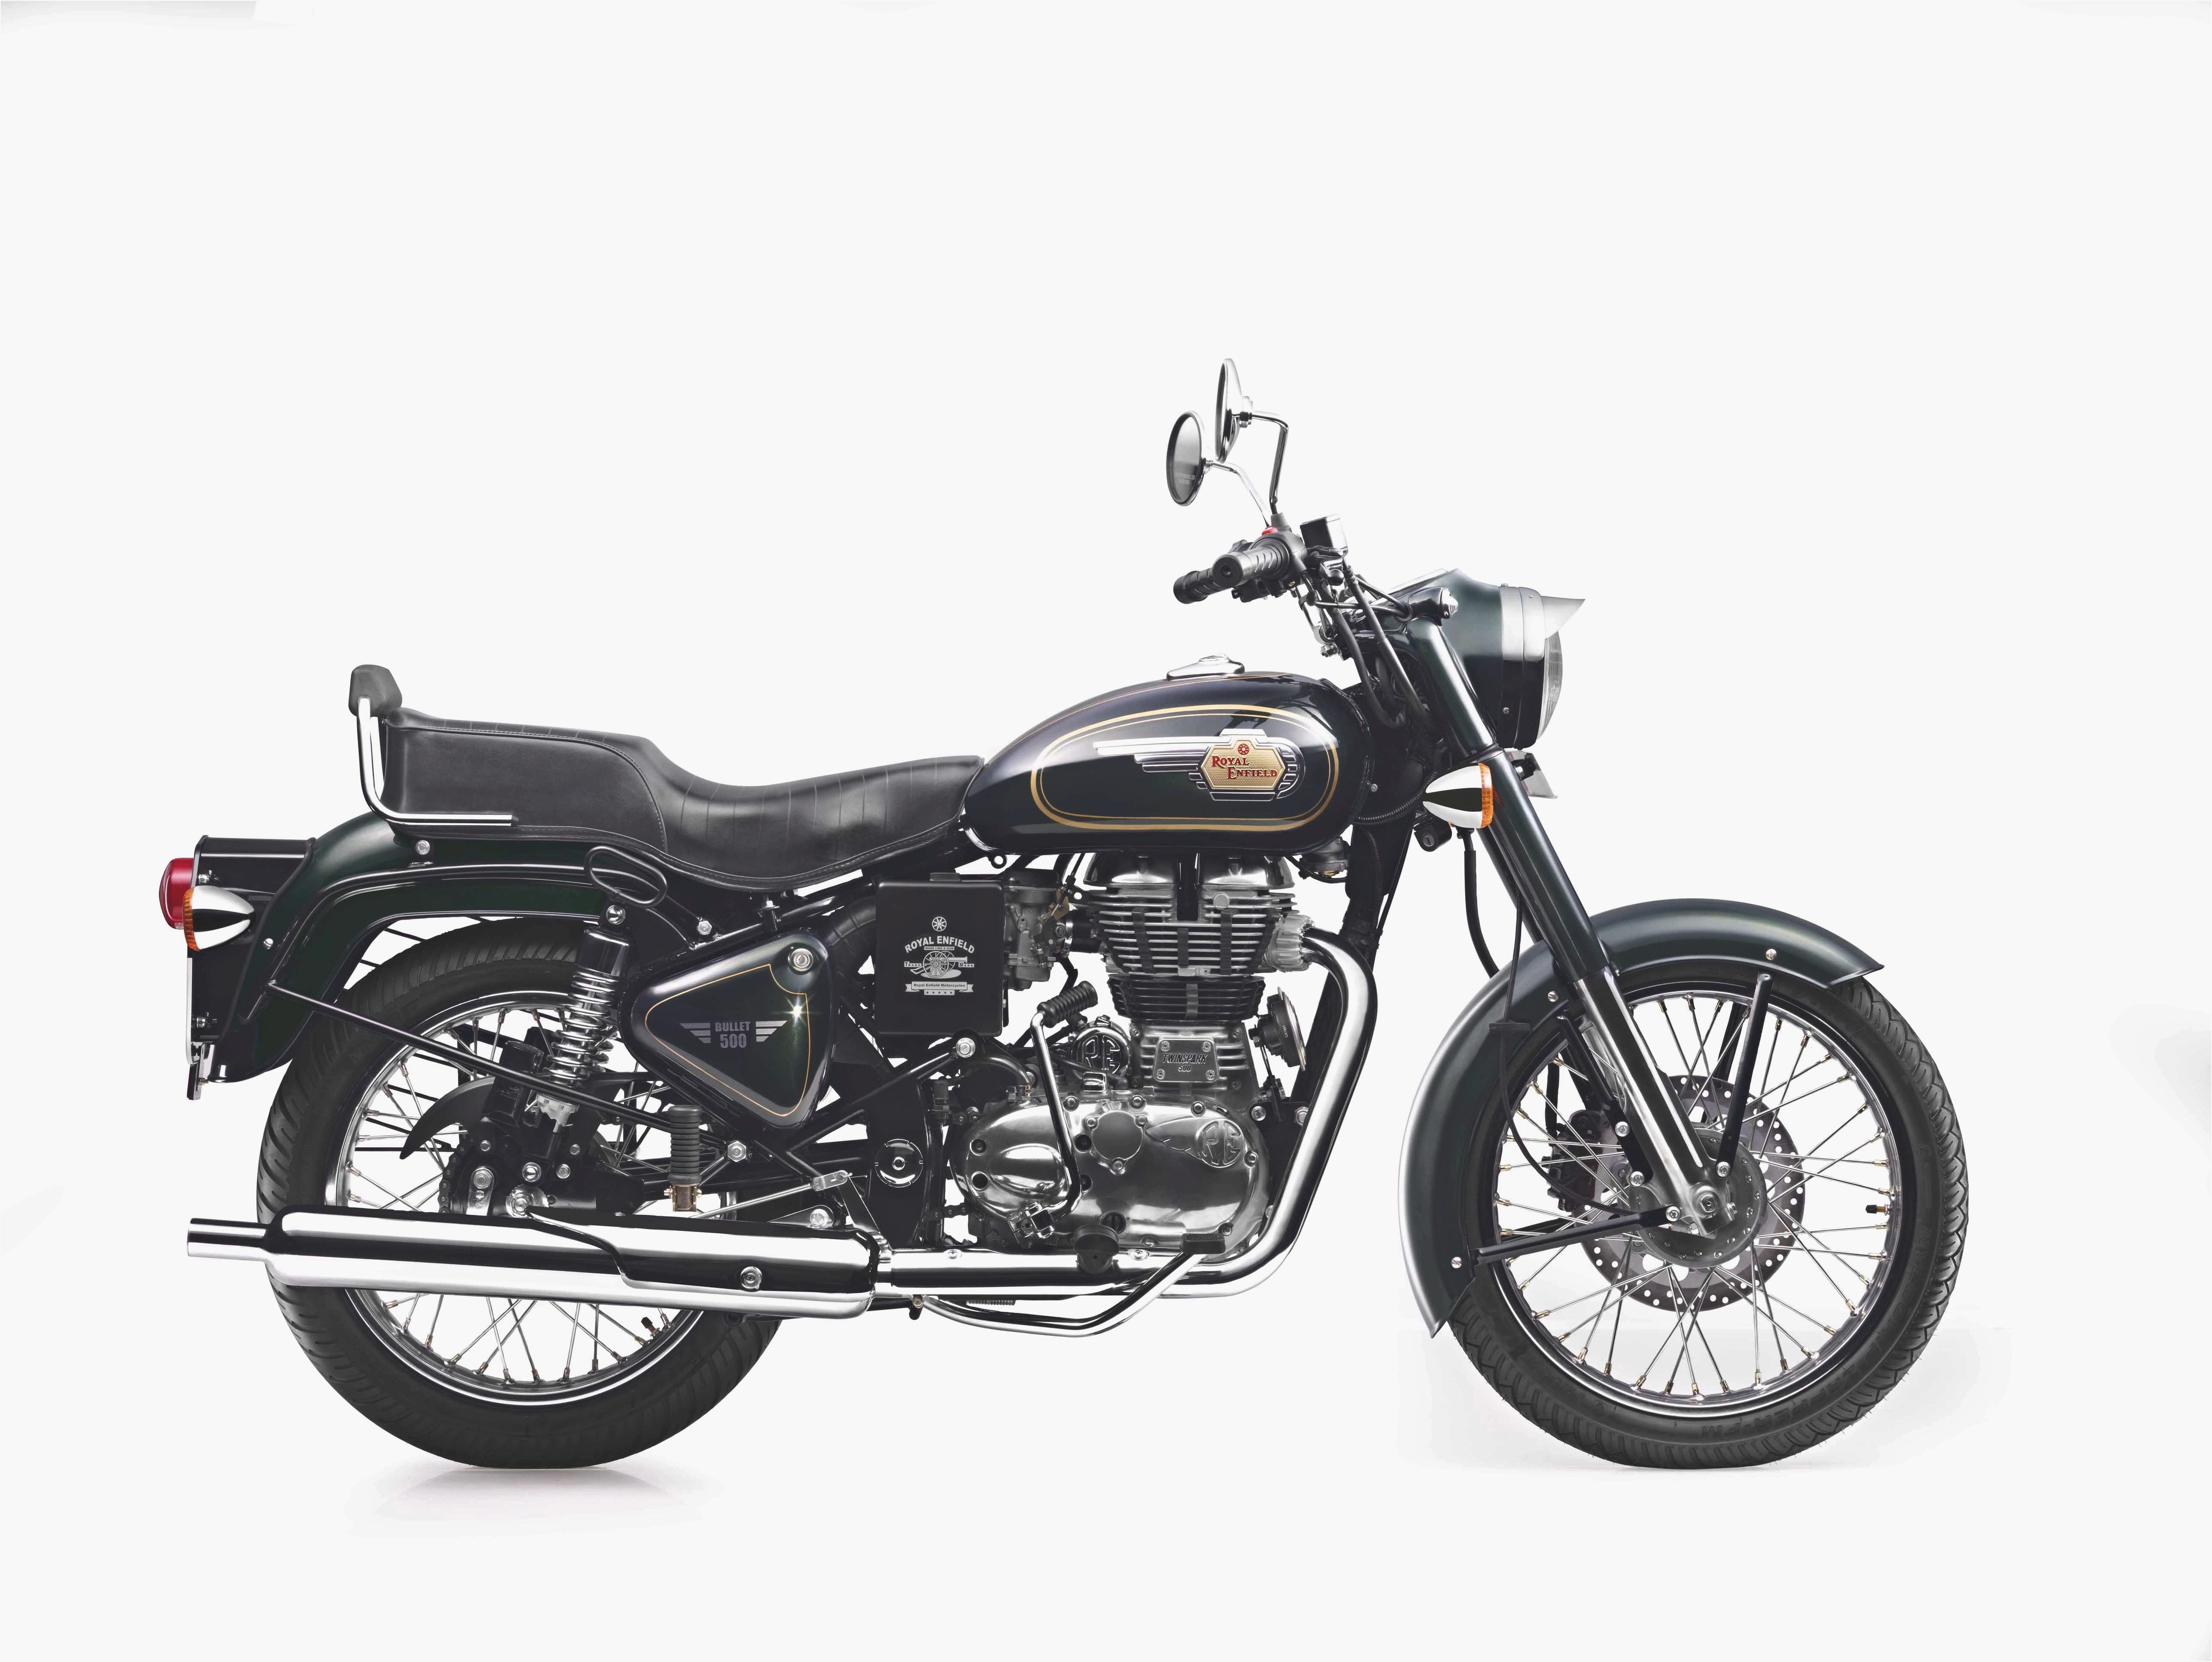 Royal Enfield Bullet 500 Army 1996 images #122719